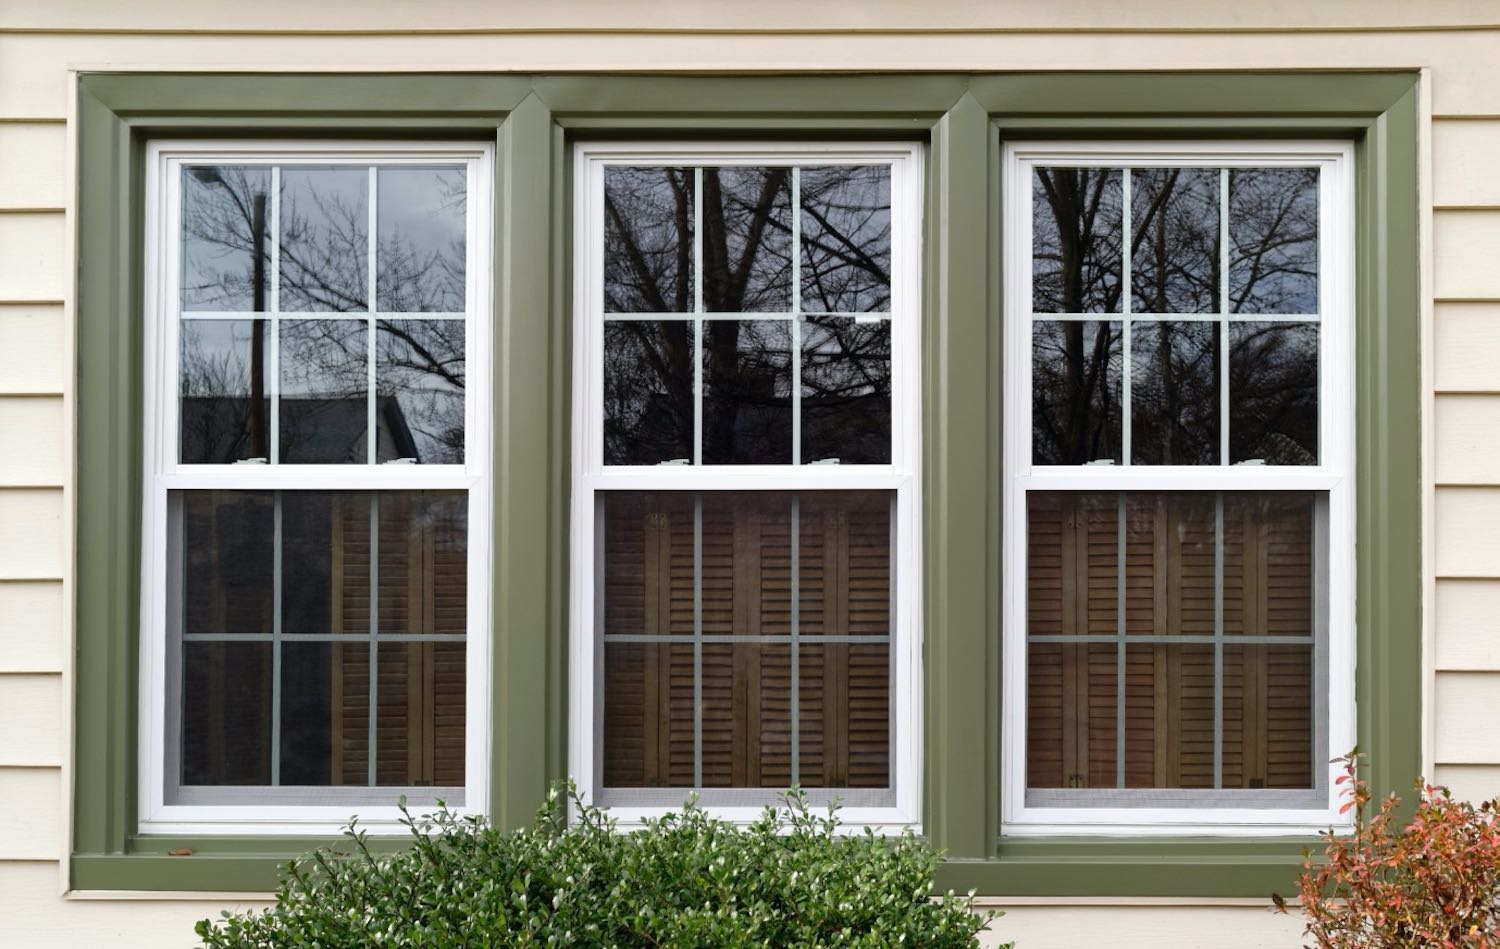 Why You Need a Protective Window Film for Your Home